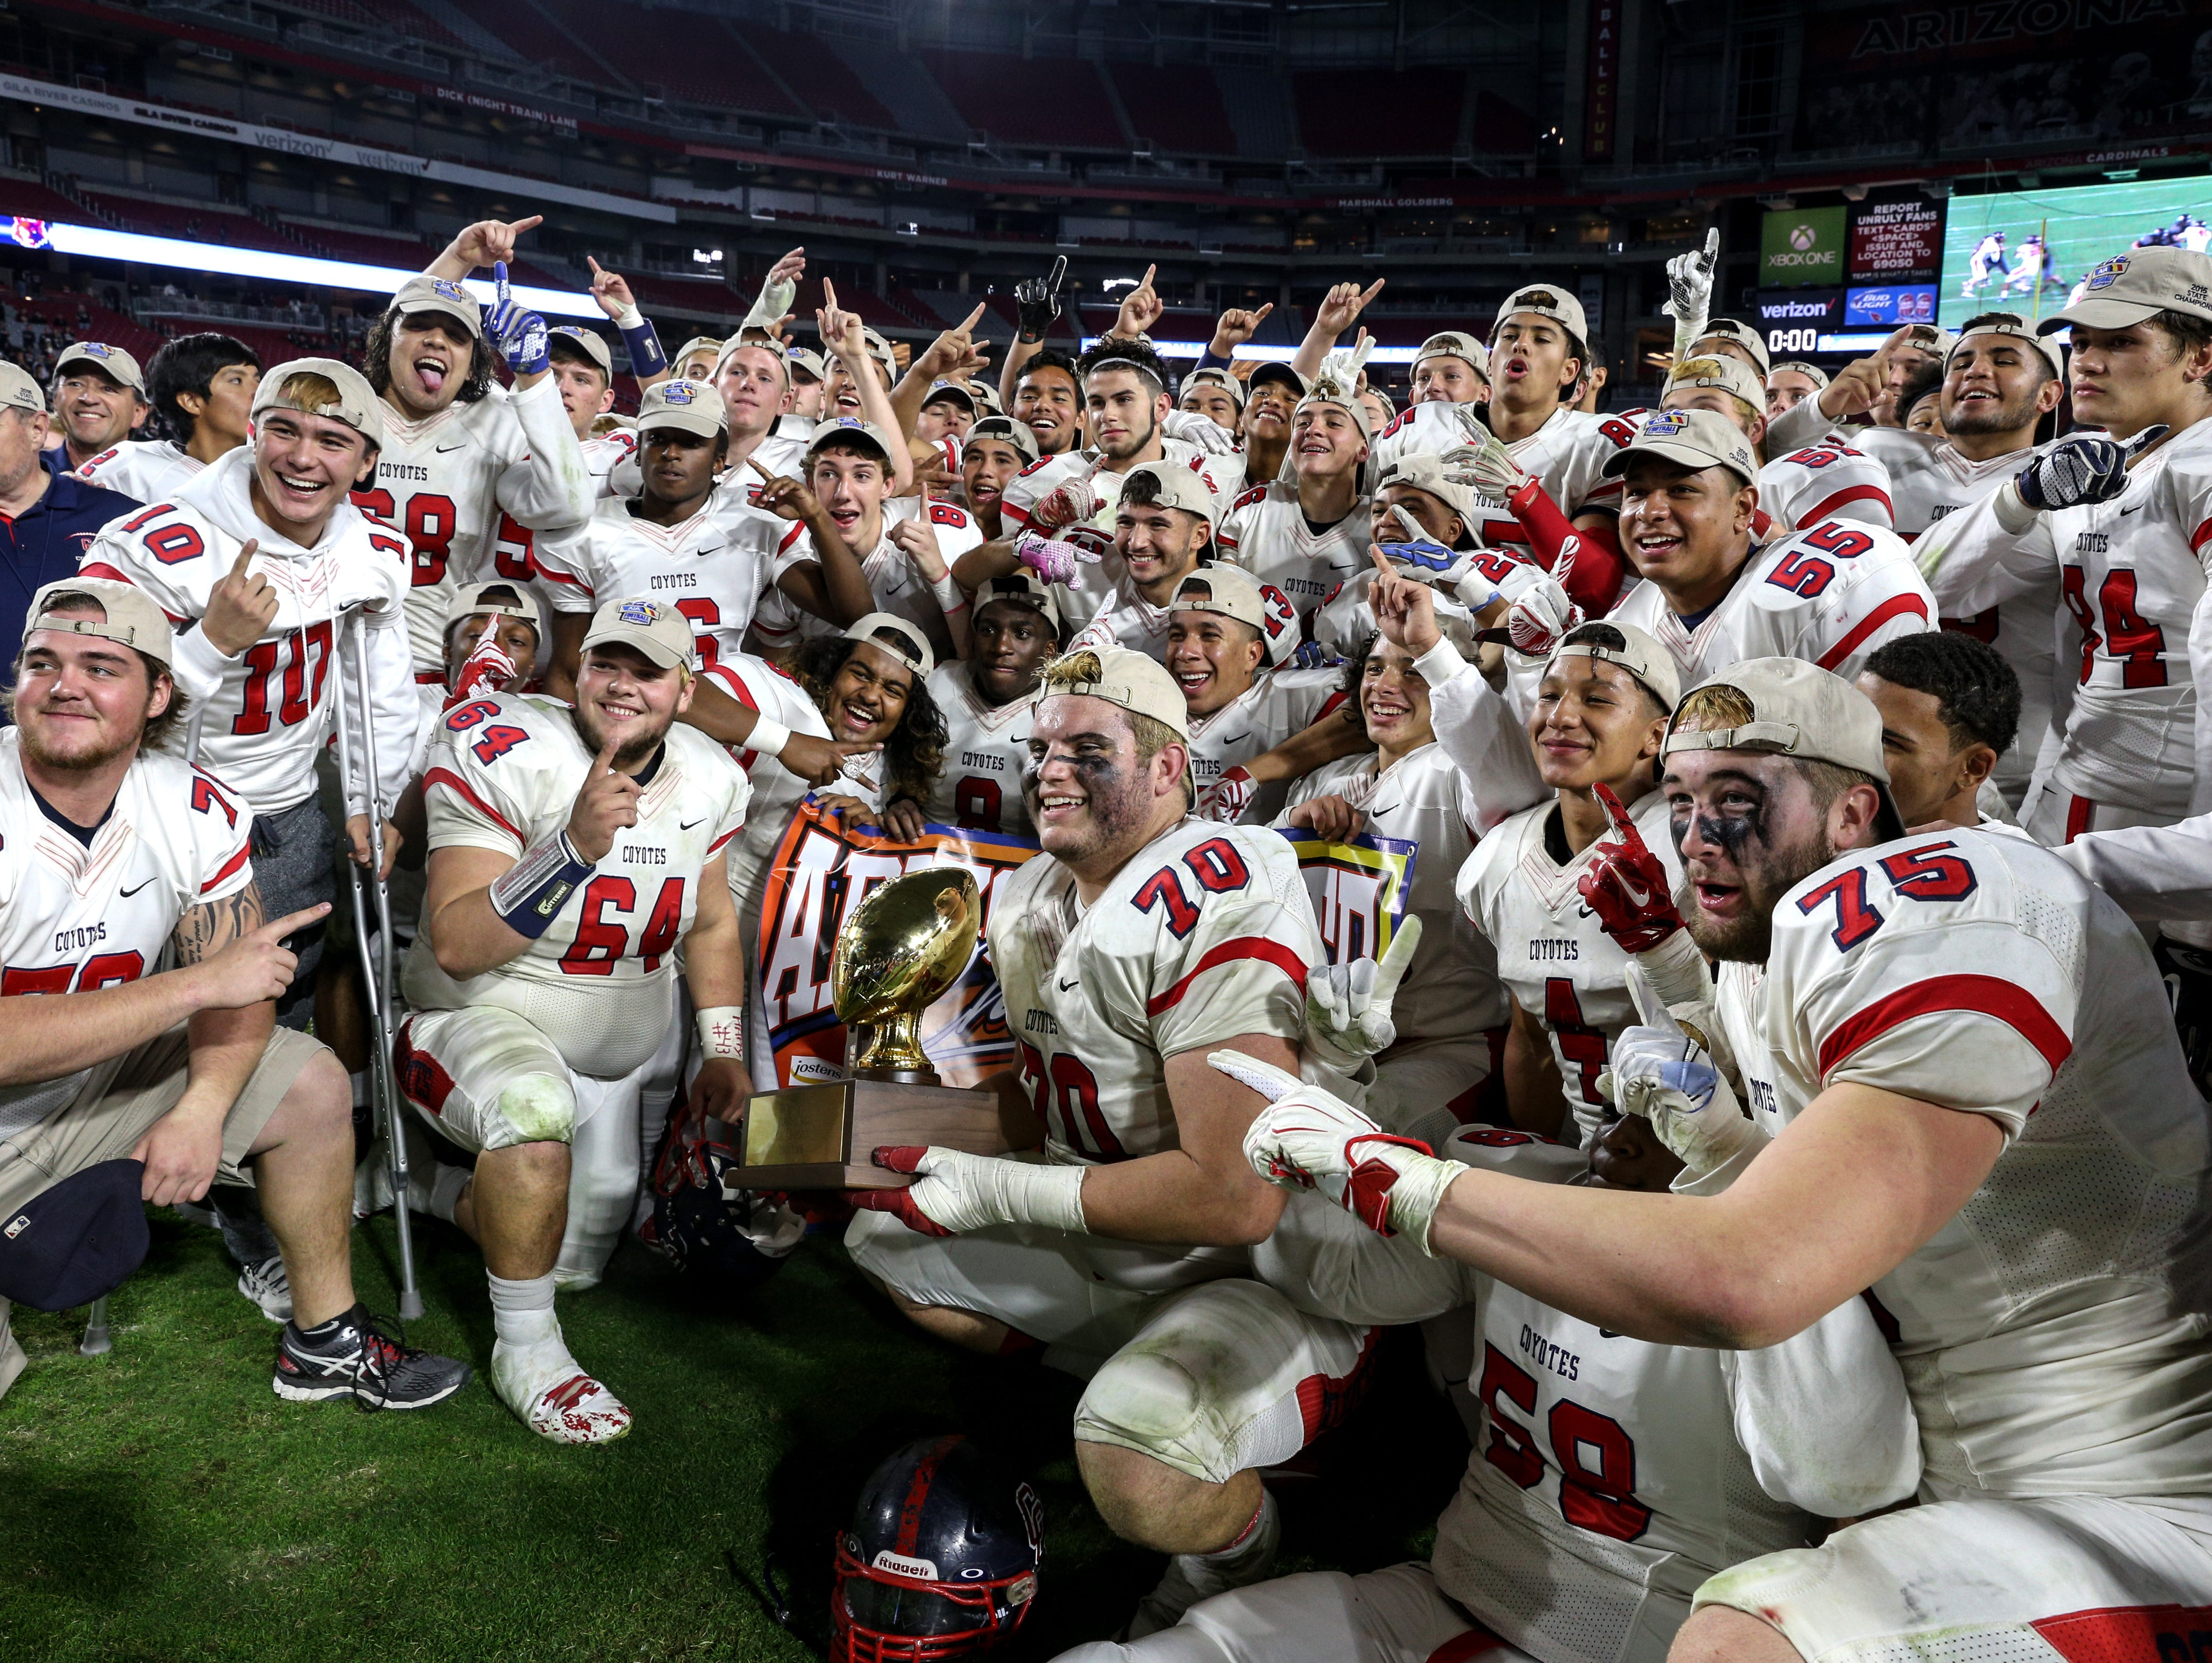 The Peoria Centennial football team celebrates after defeating Mesa Desert Ridge for the Division I state championship at University of Phoenix Stadium in Glendale.